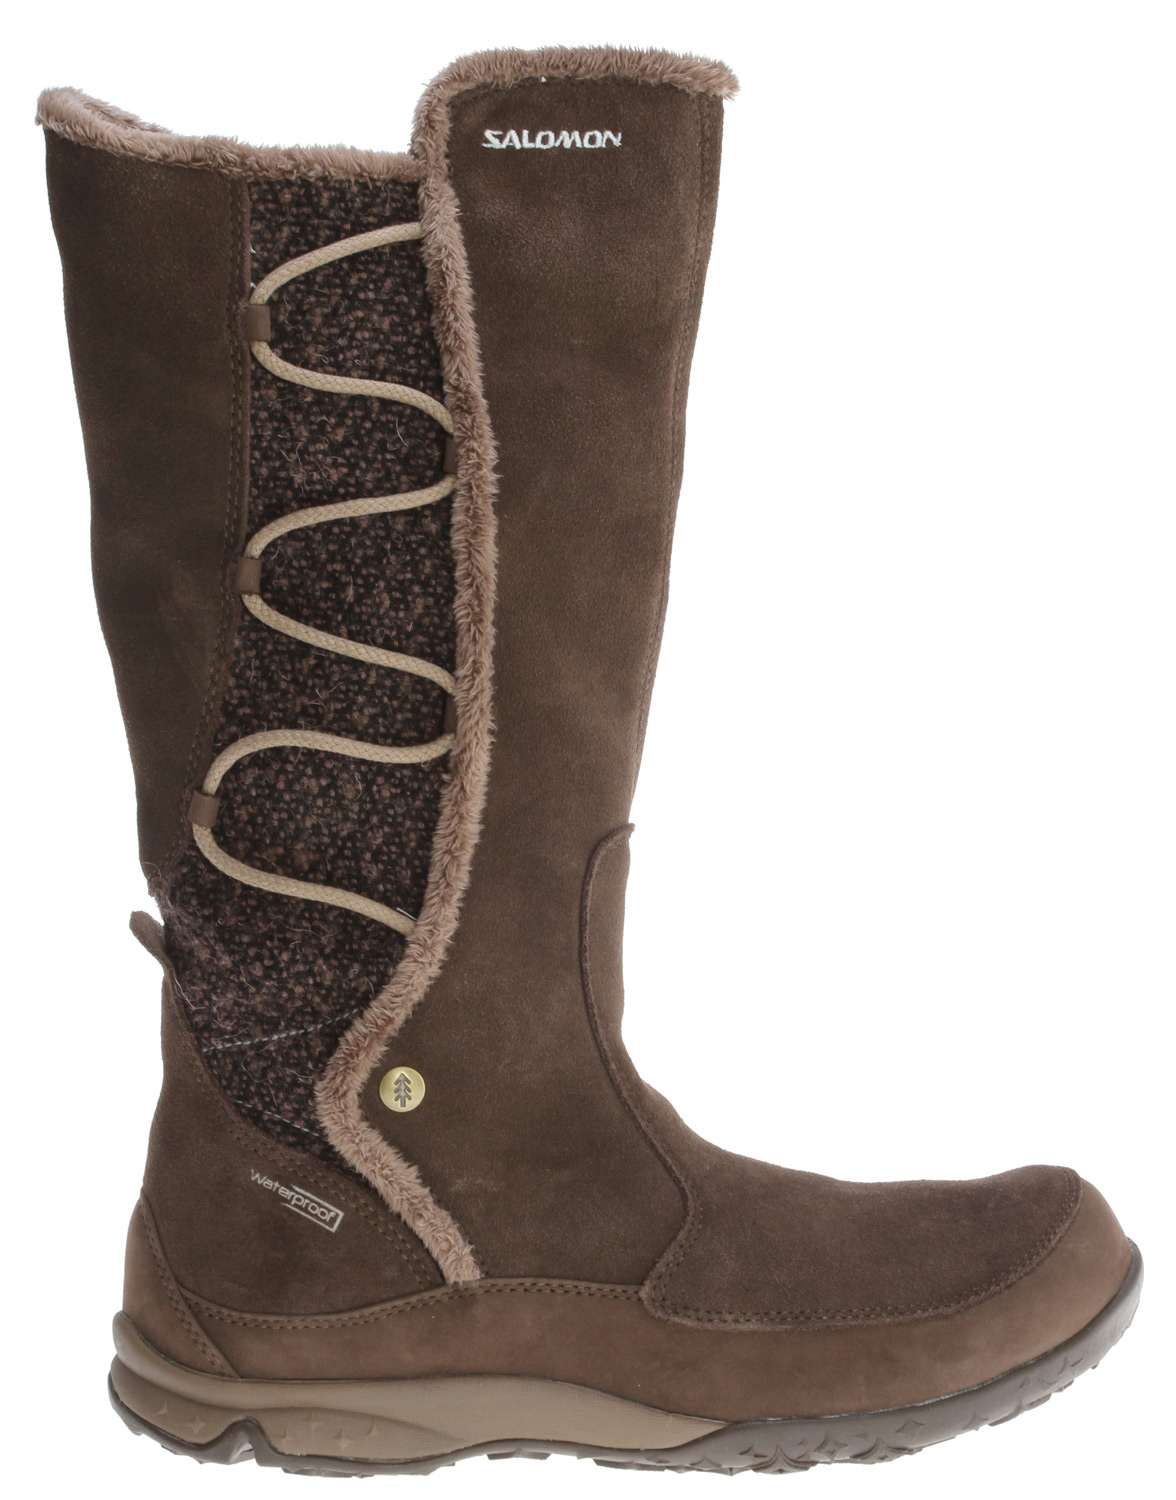 Camp and Hike Soft, cozy, knee high boot that is waterproof, a blanket for your feet during cold winter weather.Key Features of the Salomon Emmy WP Hiking Shoes: Zipper Waterproof split suede leather Wool rib Women's specific last Thinsulate 200gr lining Waterproof bootie construction - $104.95